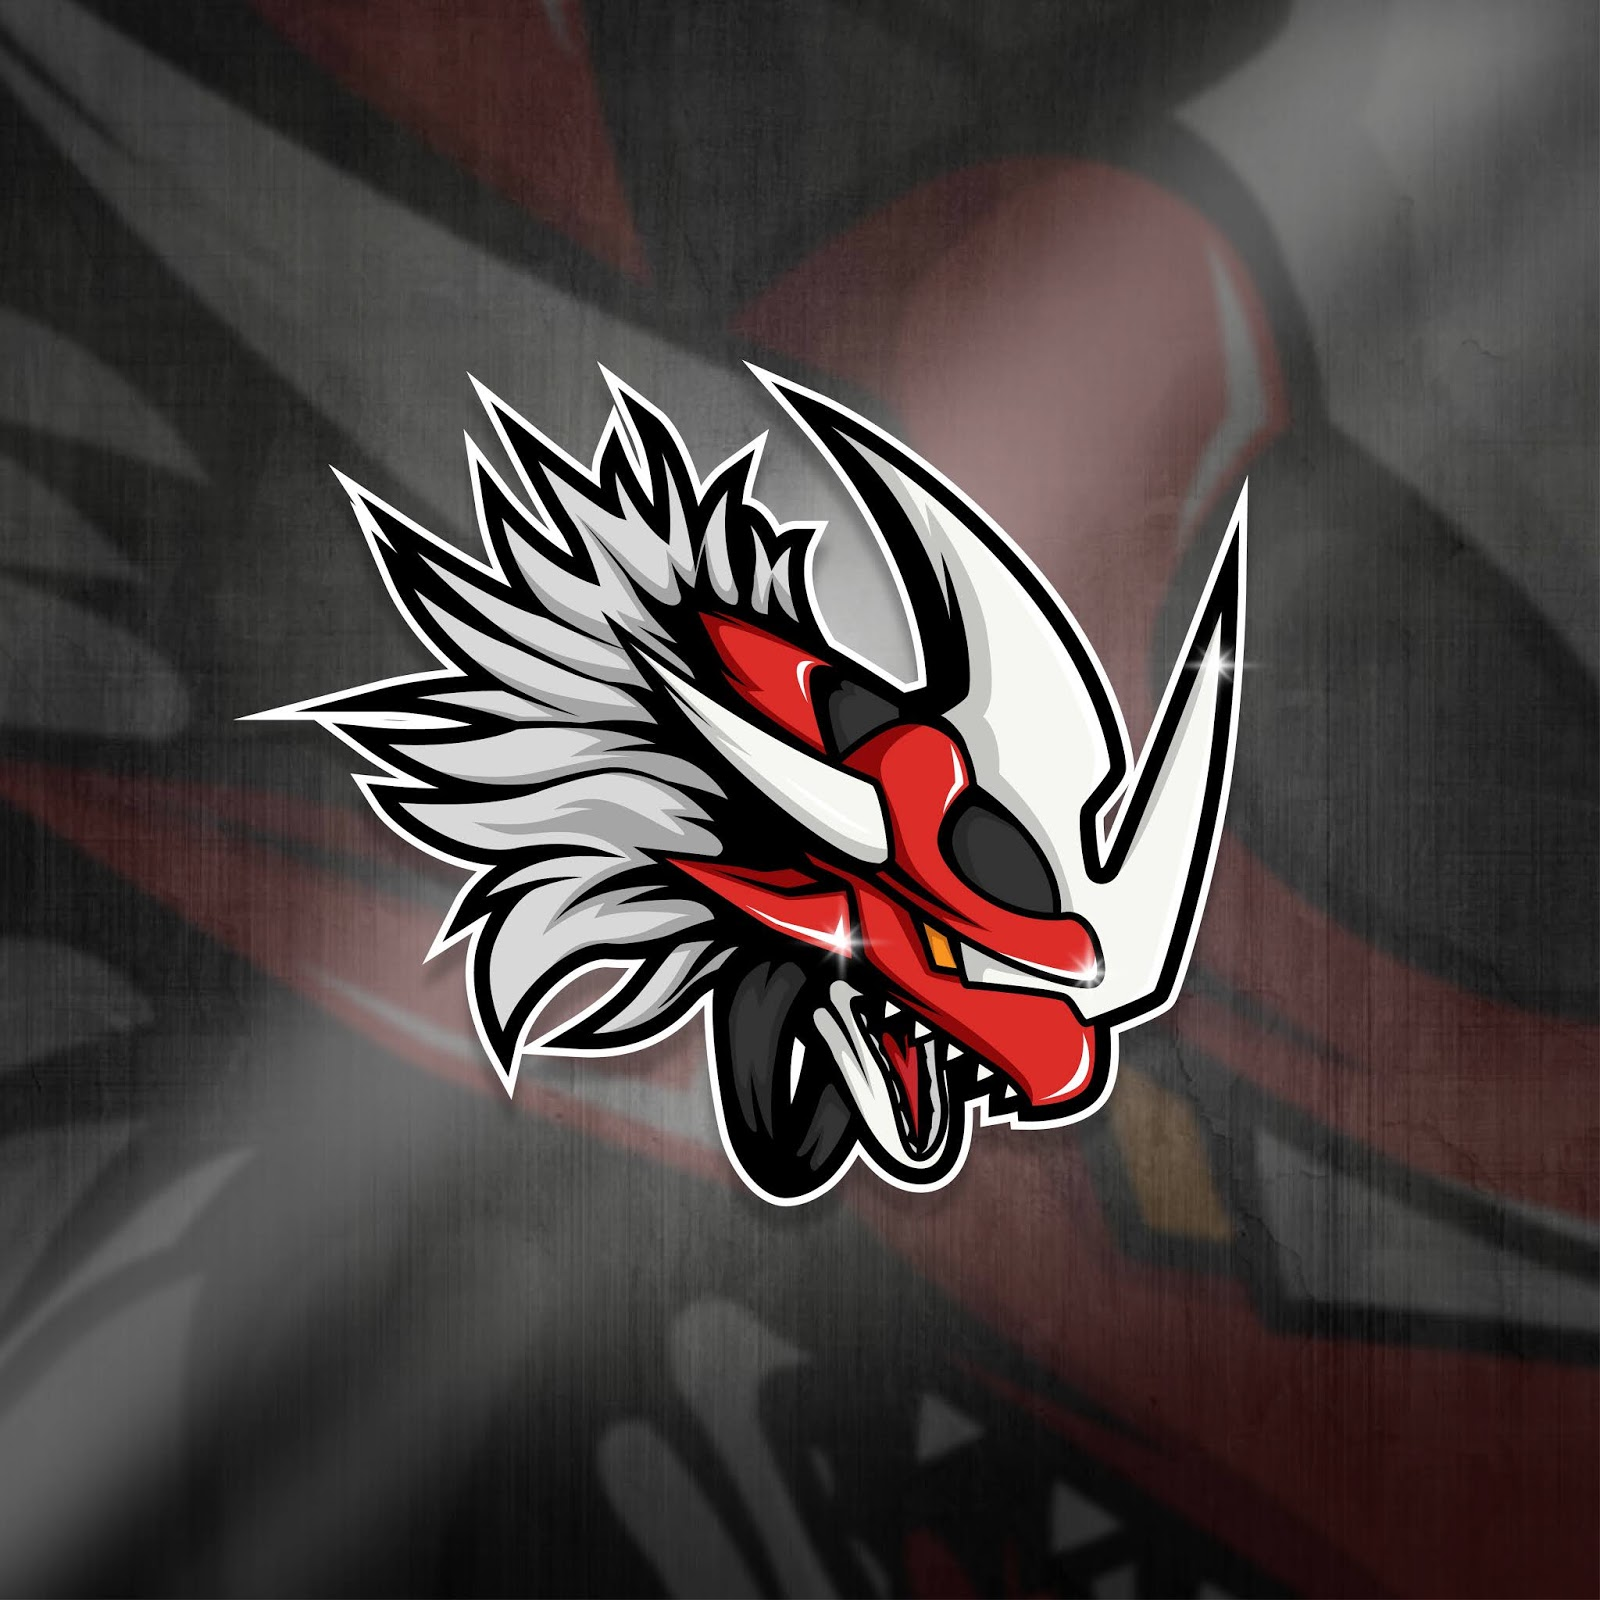 Esports Mascot Logo Team Red Dragpon Squad Free Download Vector CDR, AI, EPS and PNG Formats